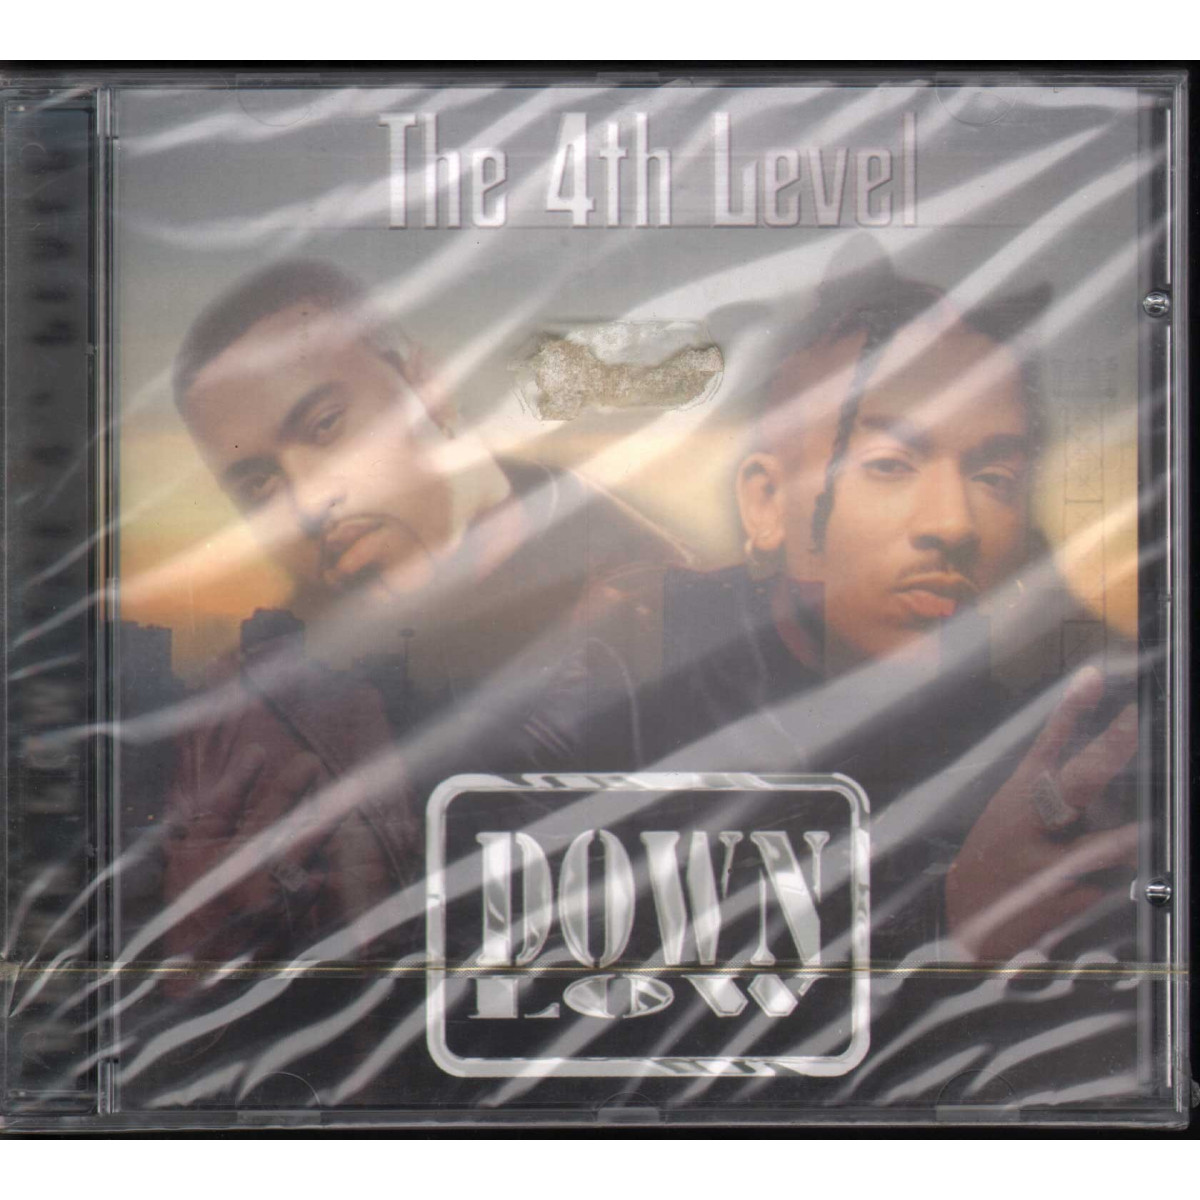 Down Low CD The 4th Level  Nuovo Sigillato 5099750305720